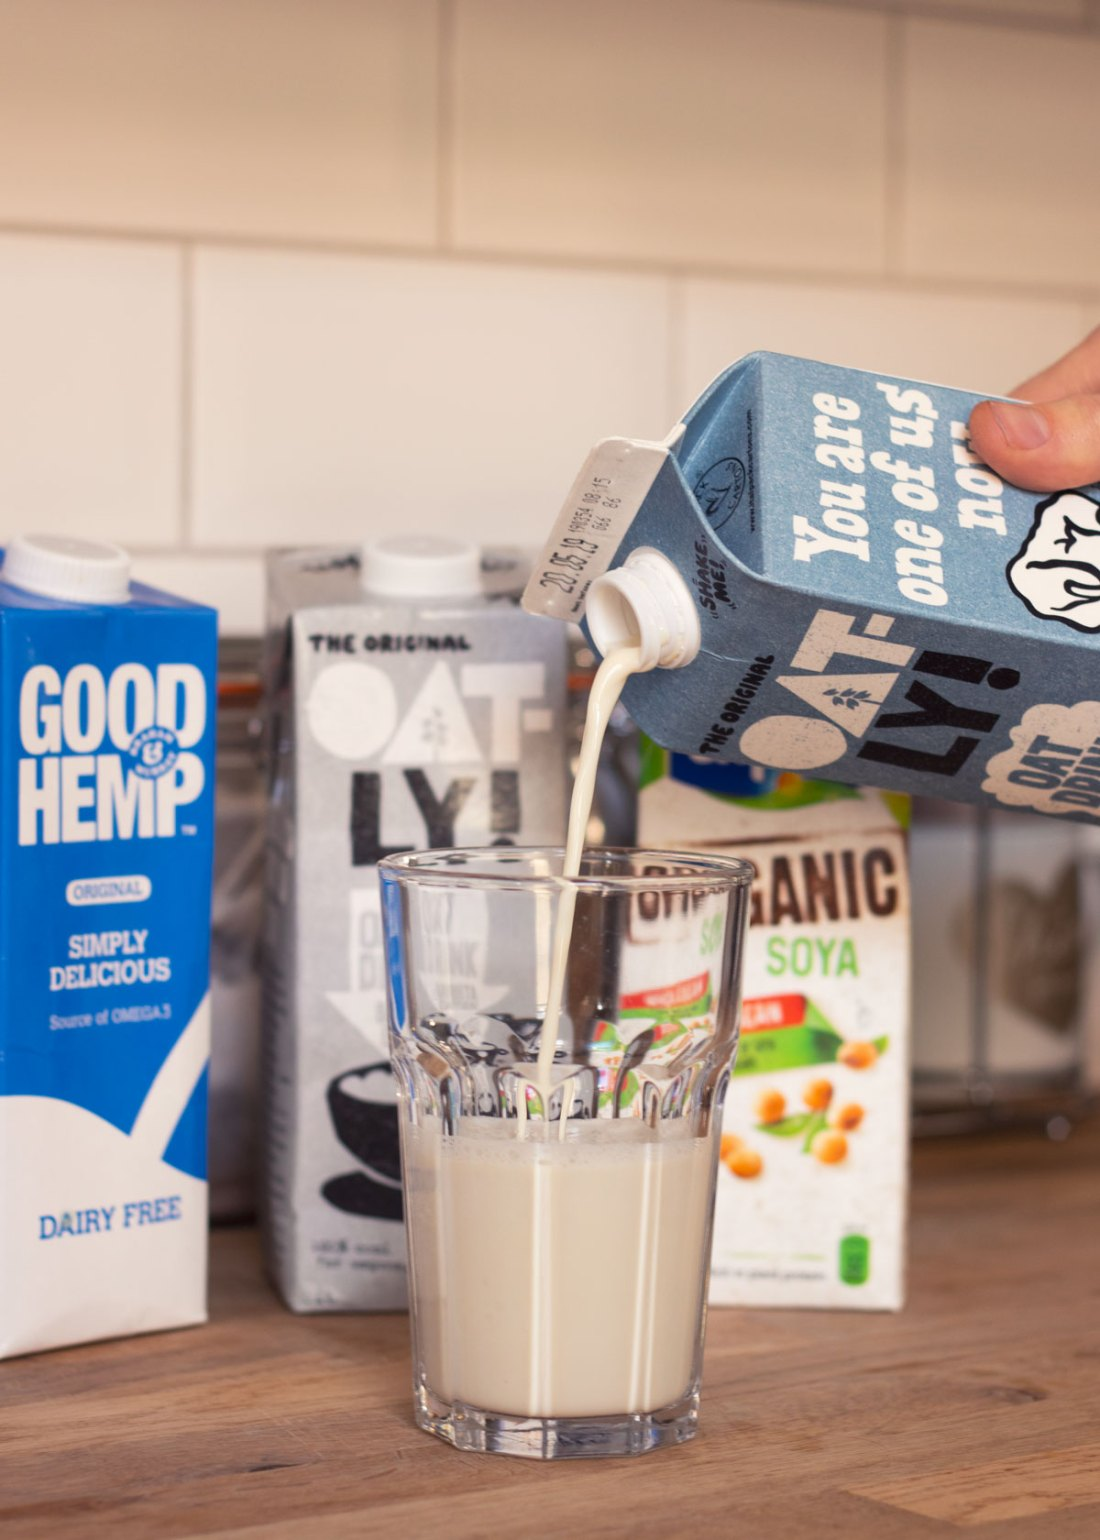 Oatly-Semi-Skimmed-Milk